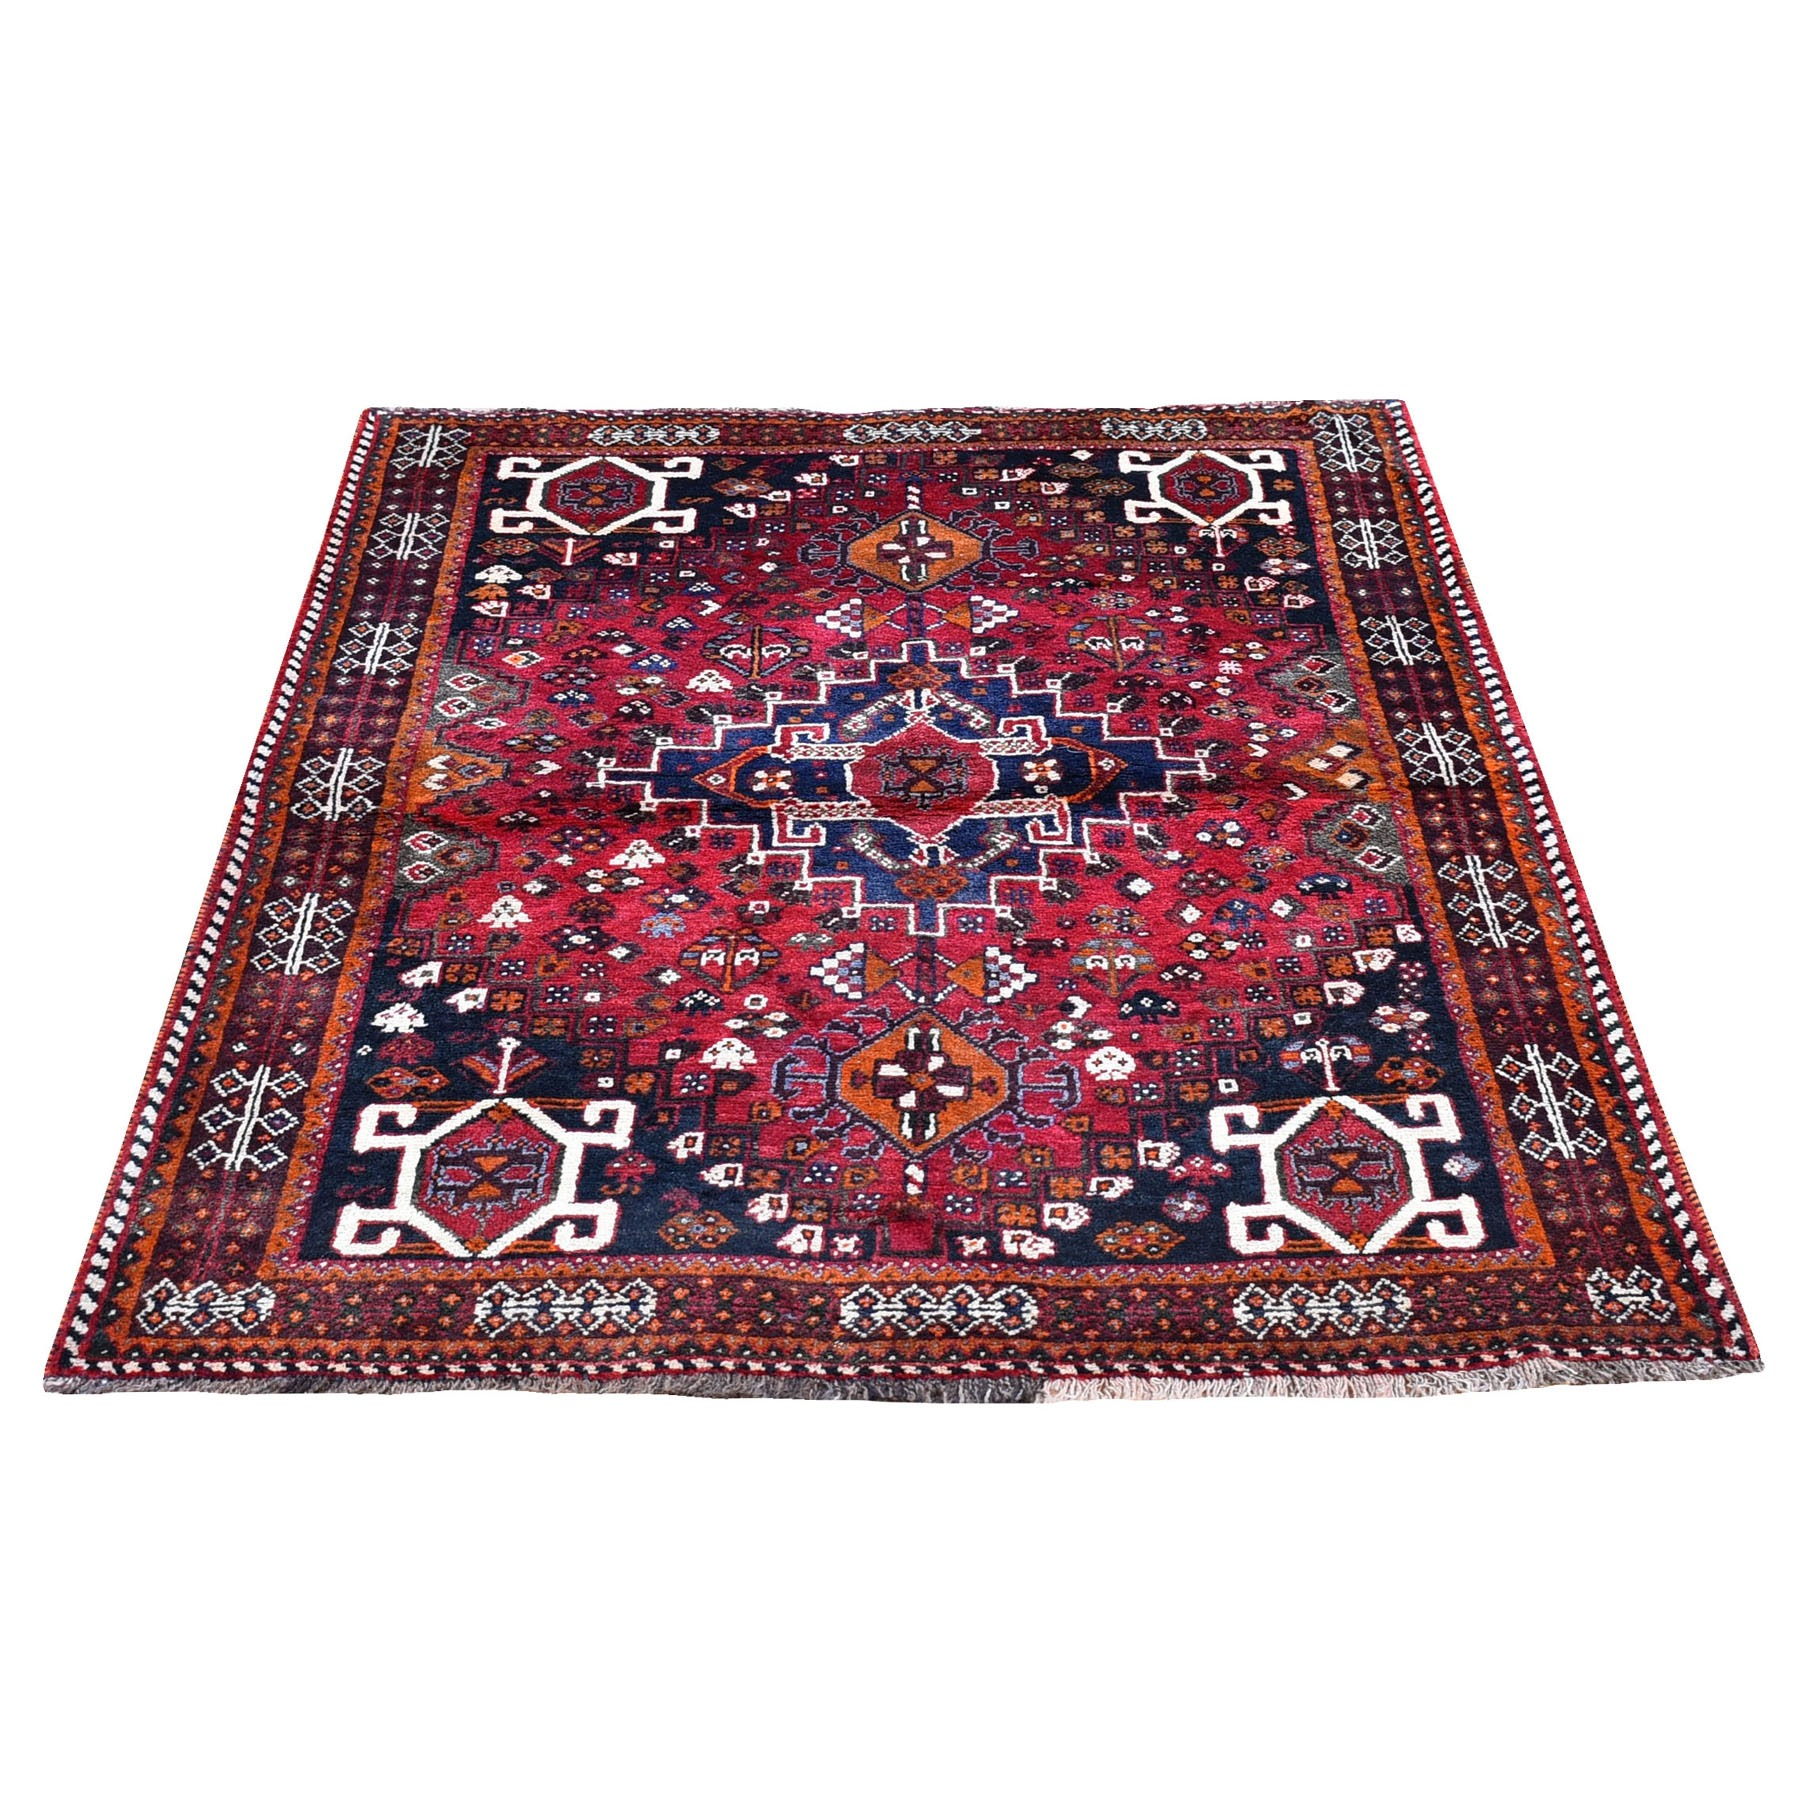 "3'10""x5'3"" Red New Persian Hamadan with Geometric Design Pure Wool Hand Knotted Oriental Rug"